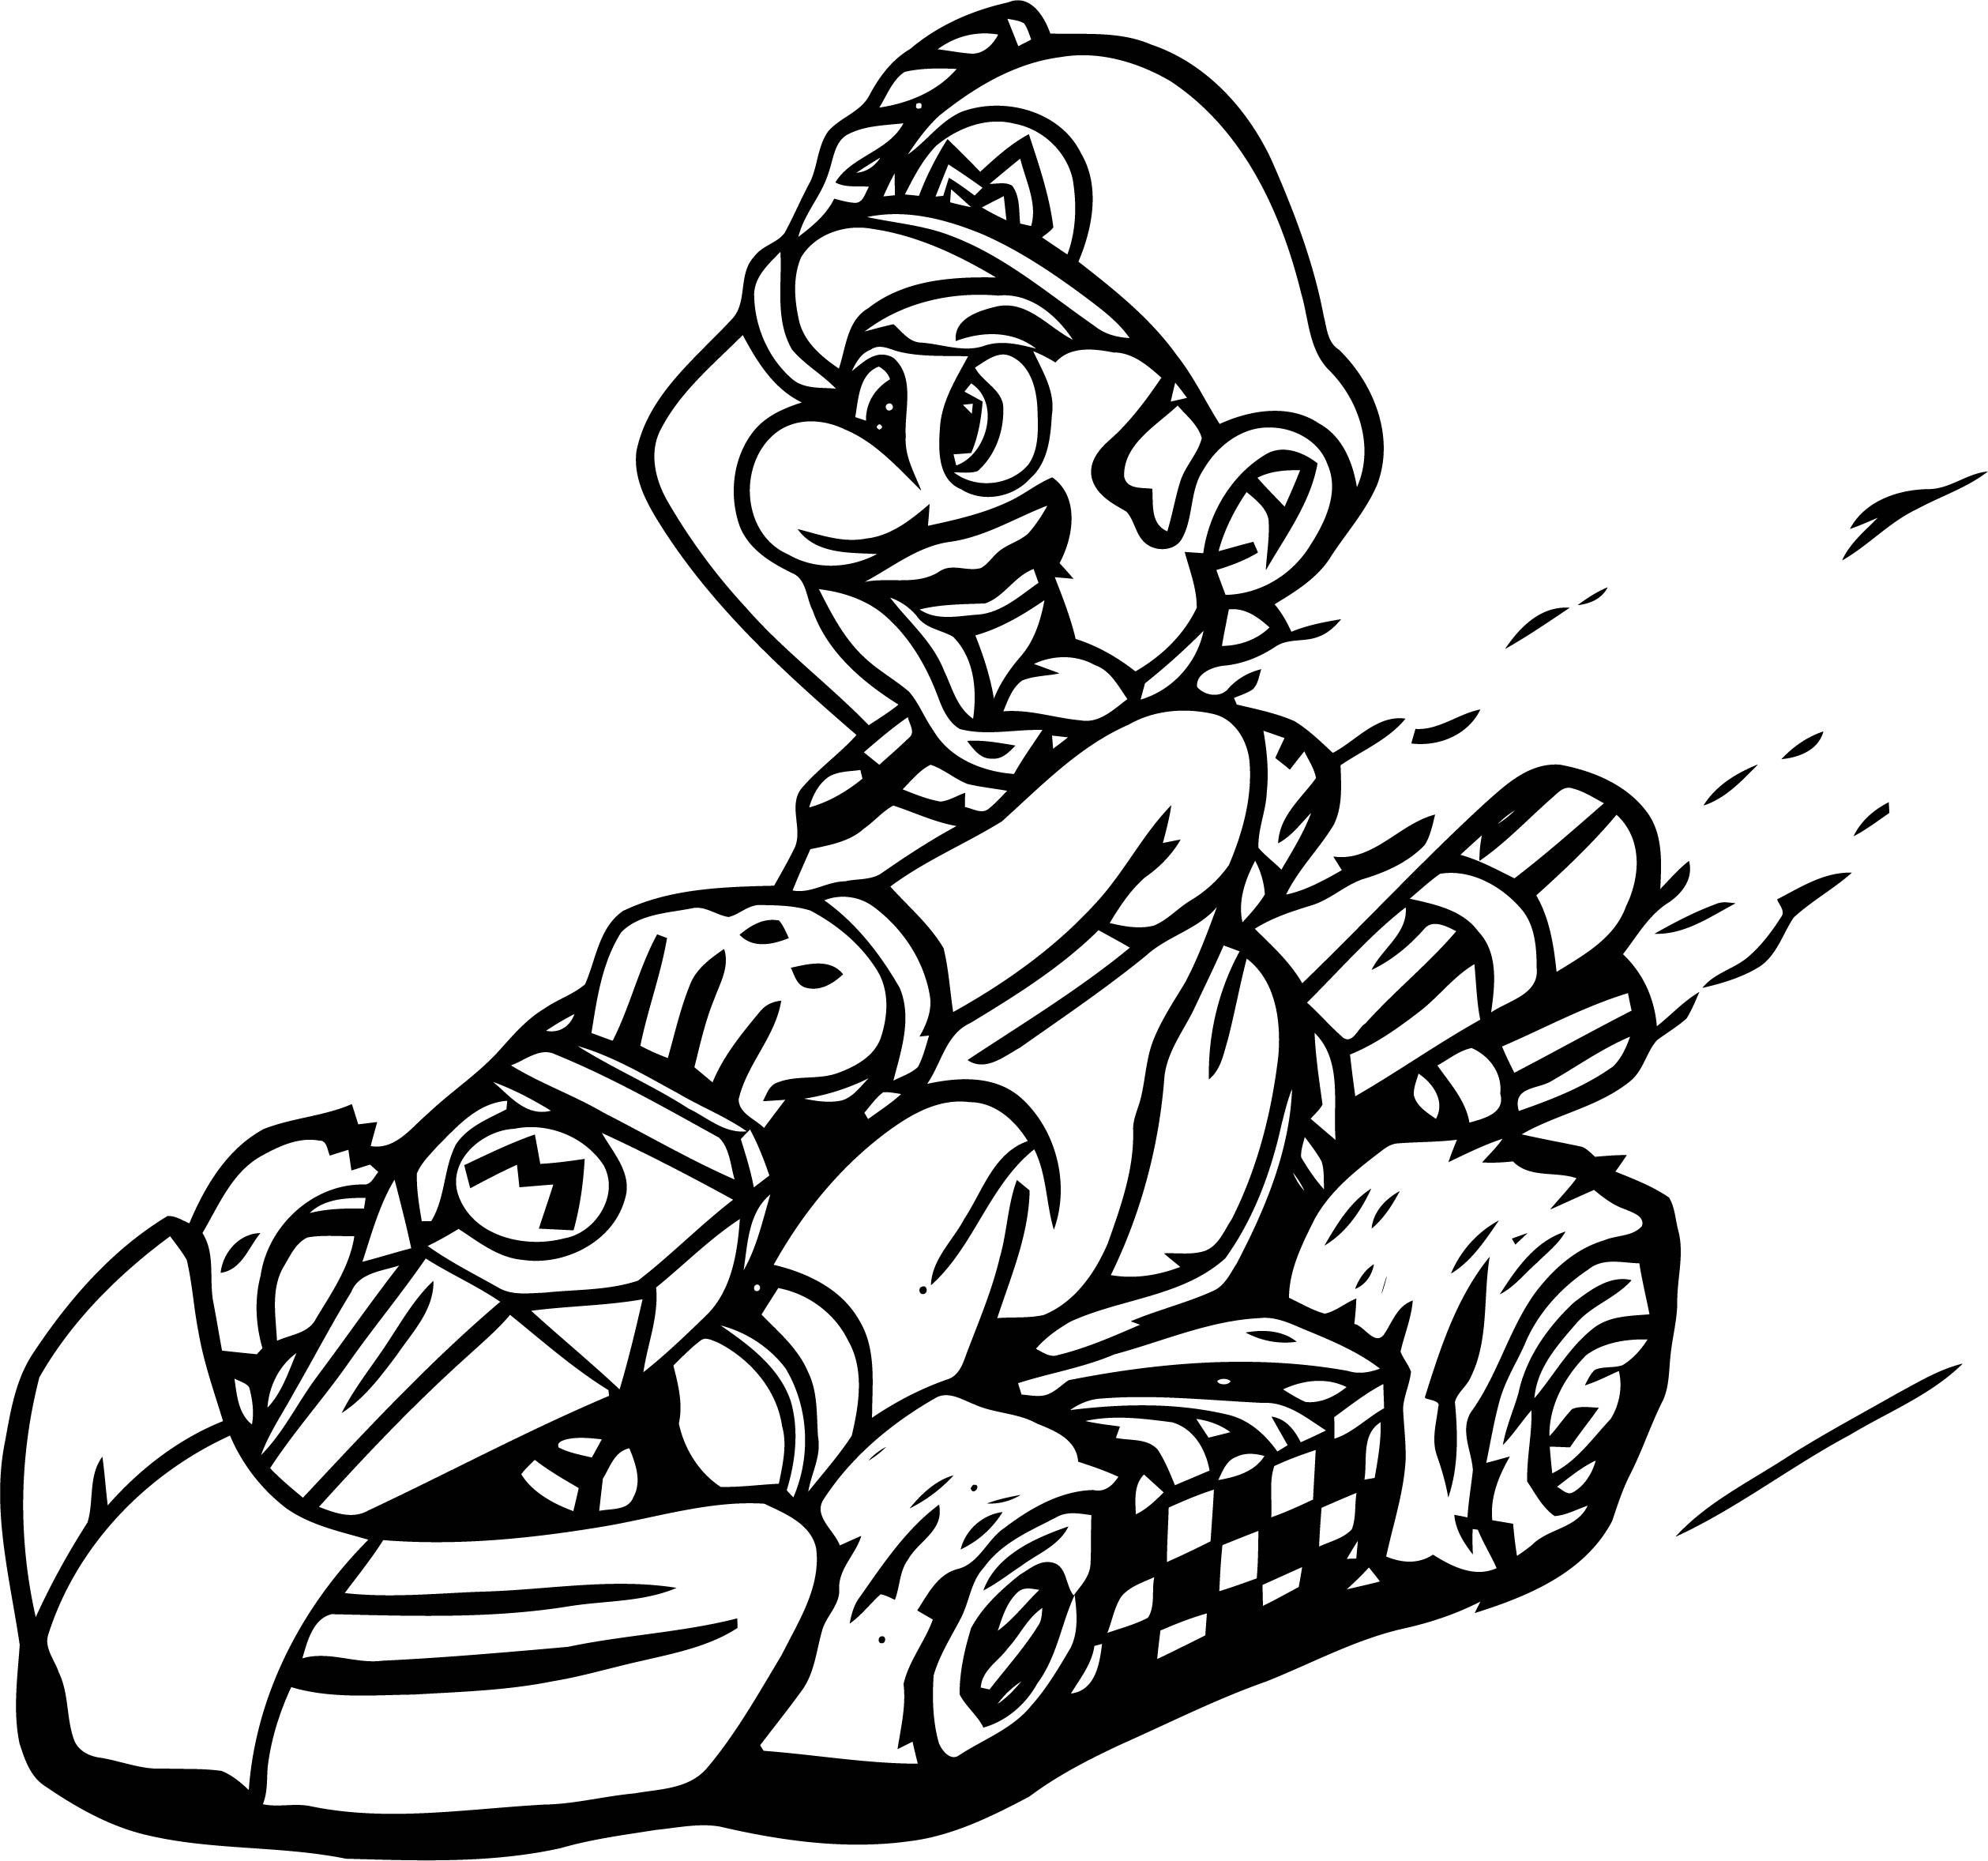 Mario Kart Wii Coloring Page